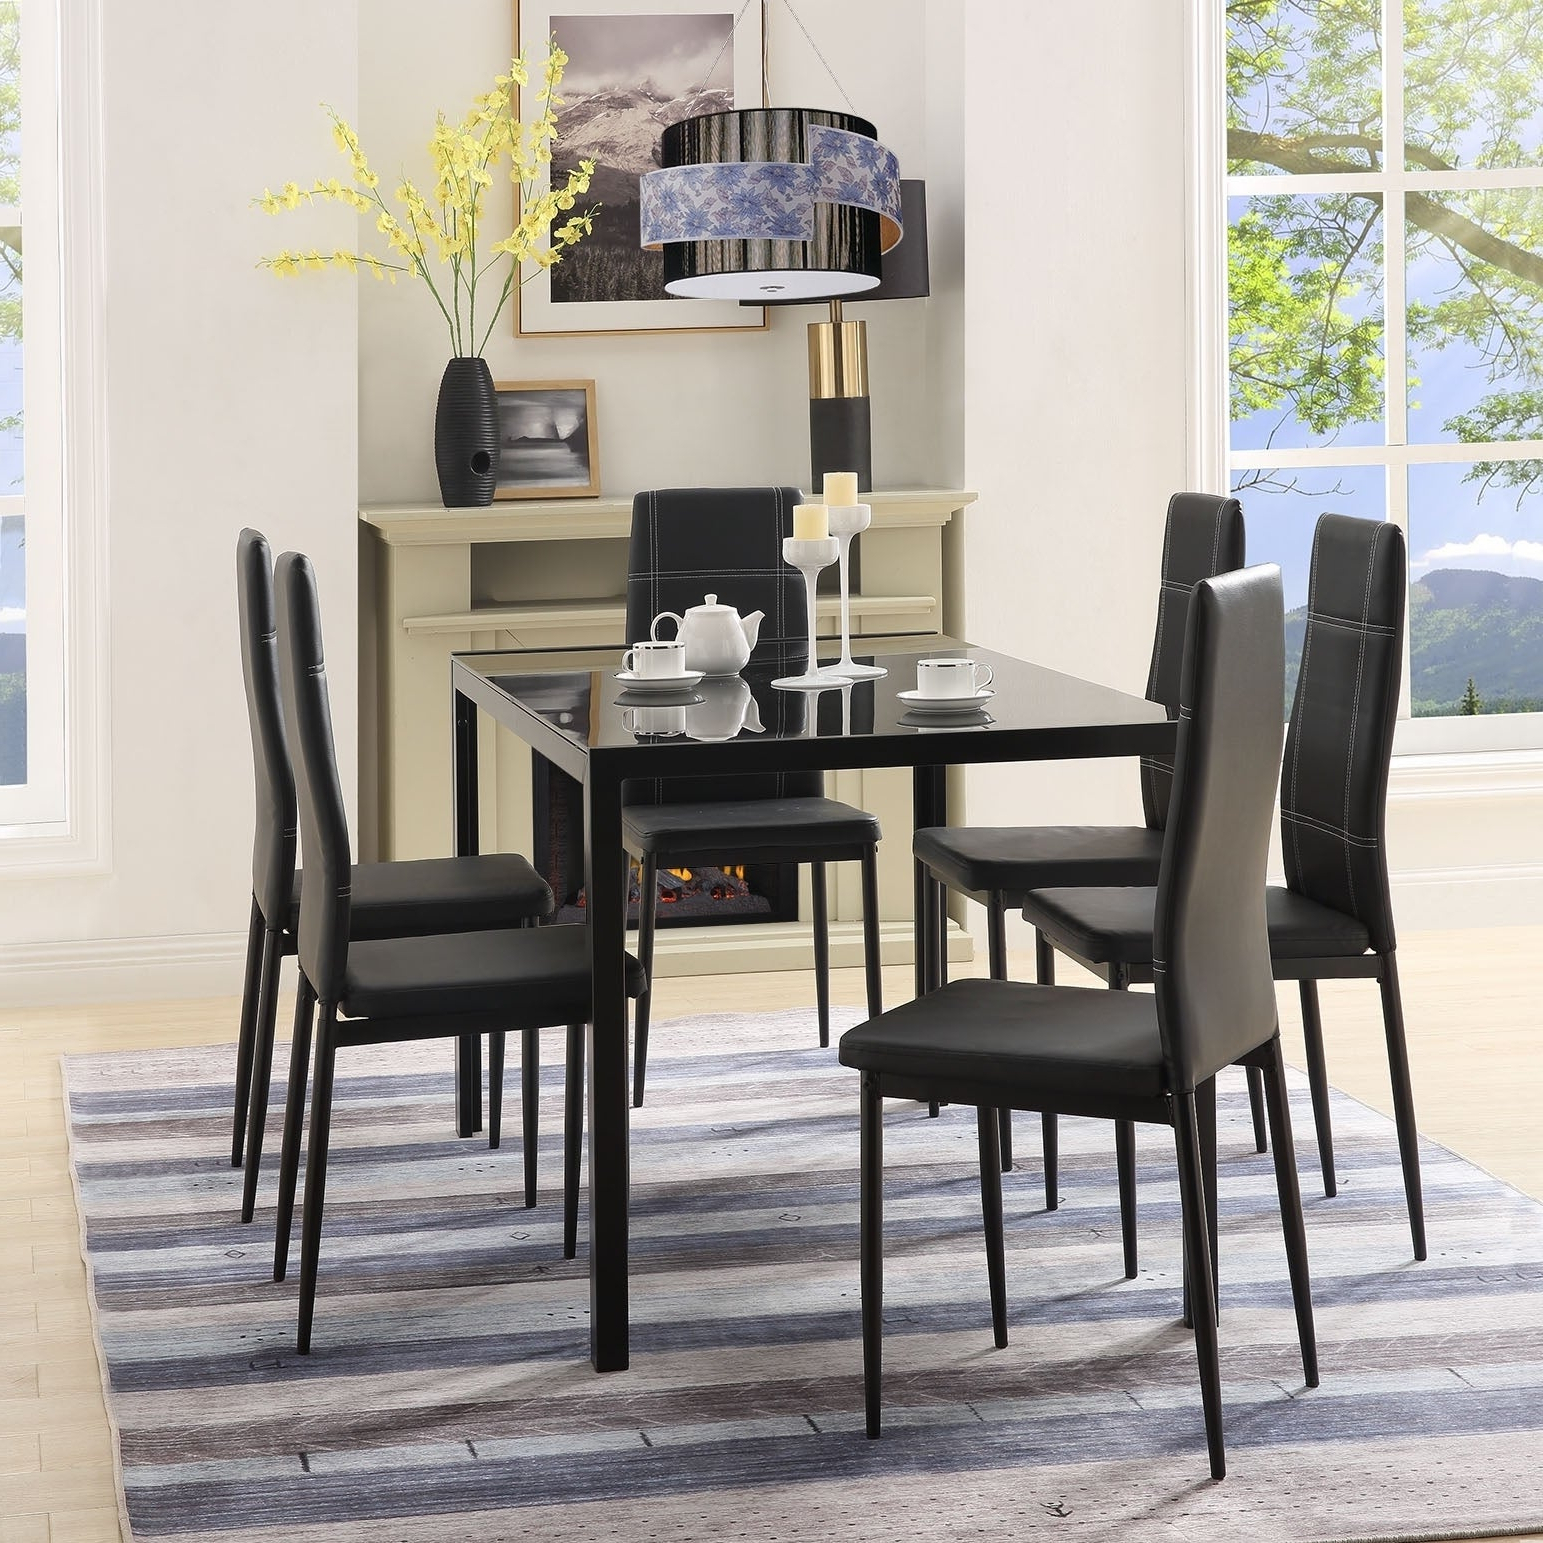 Newest Maynard 5 Piece Dining Sets In Merax 7 Piece Dining Set Glass Top Metal Table 6 Person Table And Chairs (View 12 of 20)